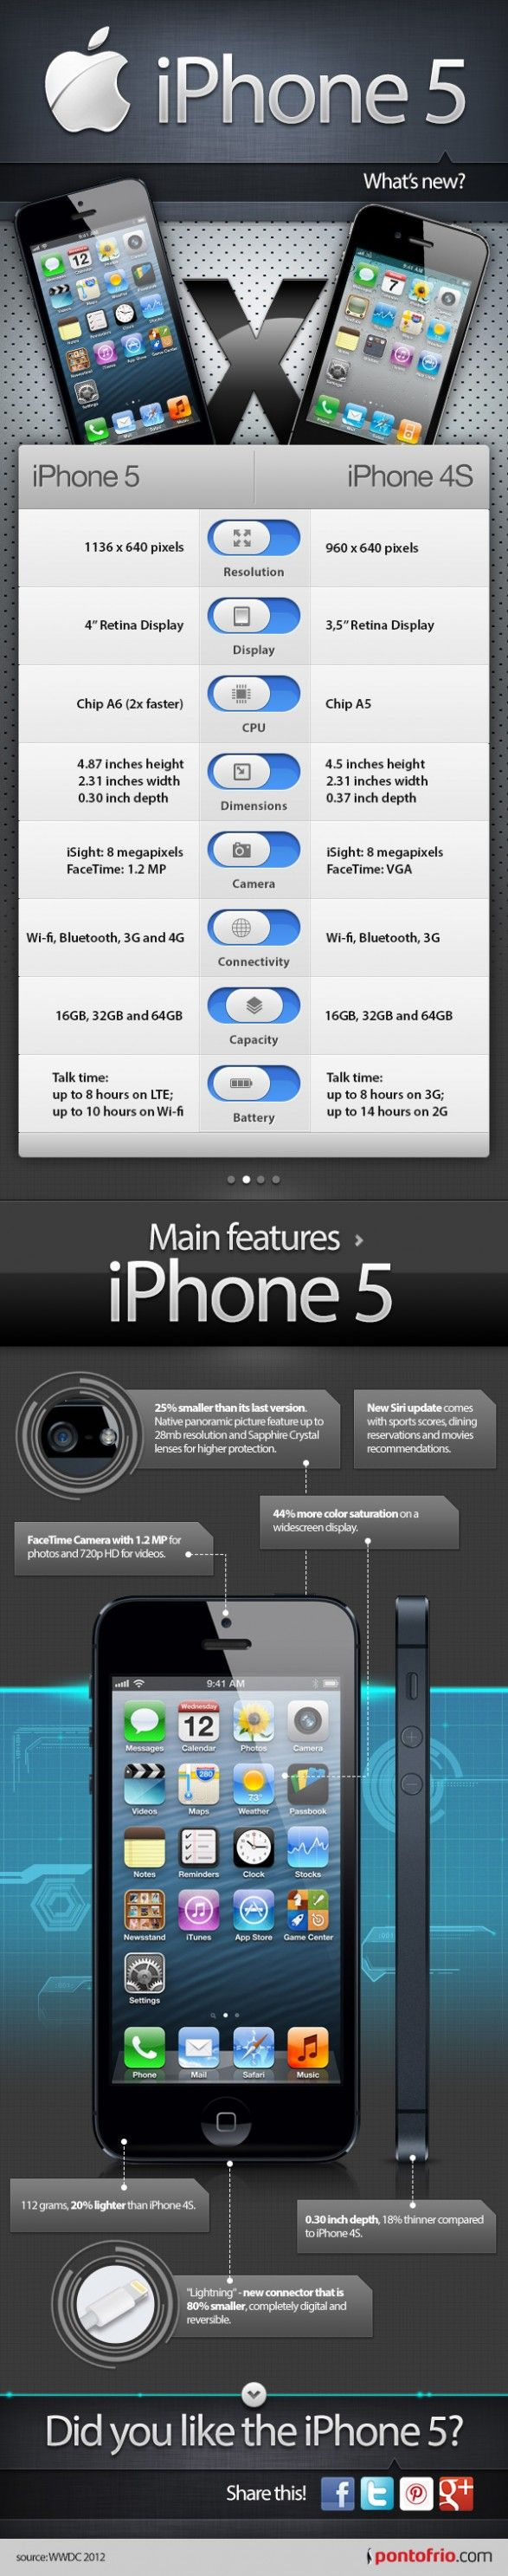 iPhone 5 - Check out the new iPhone